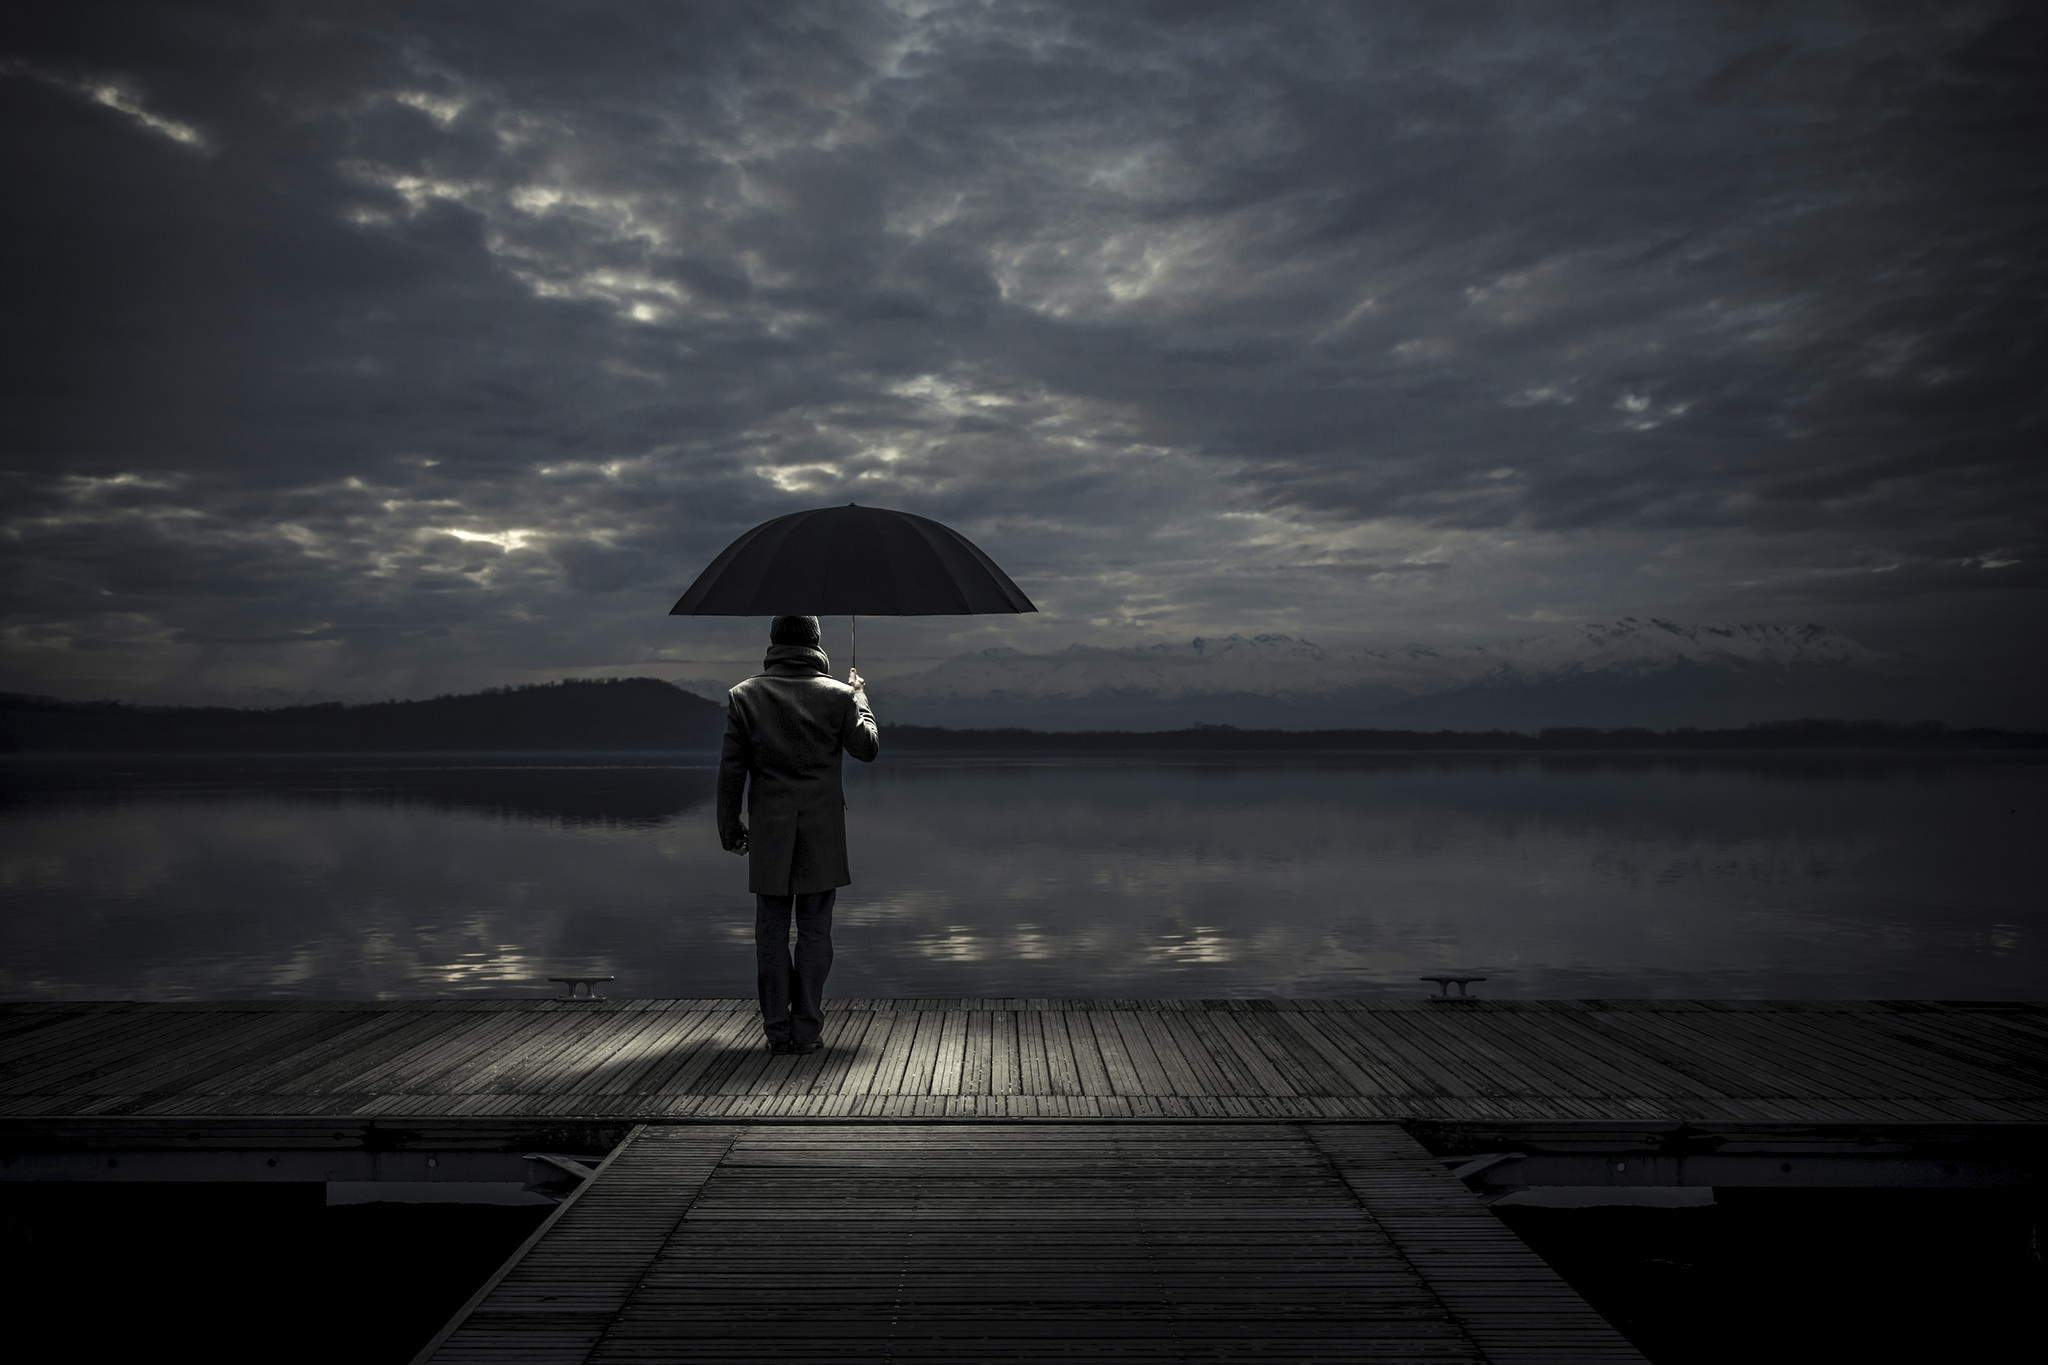 1280x1024 Alone man With Umbrella 1280x1024 Resolution HD ...